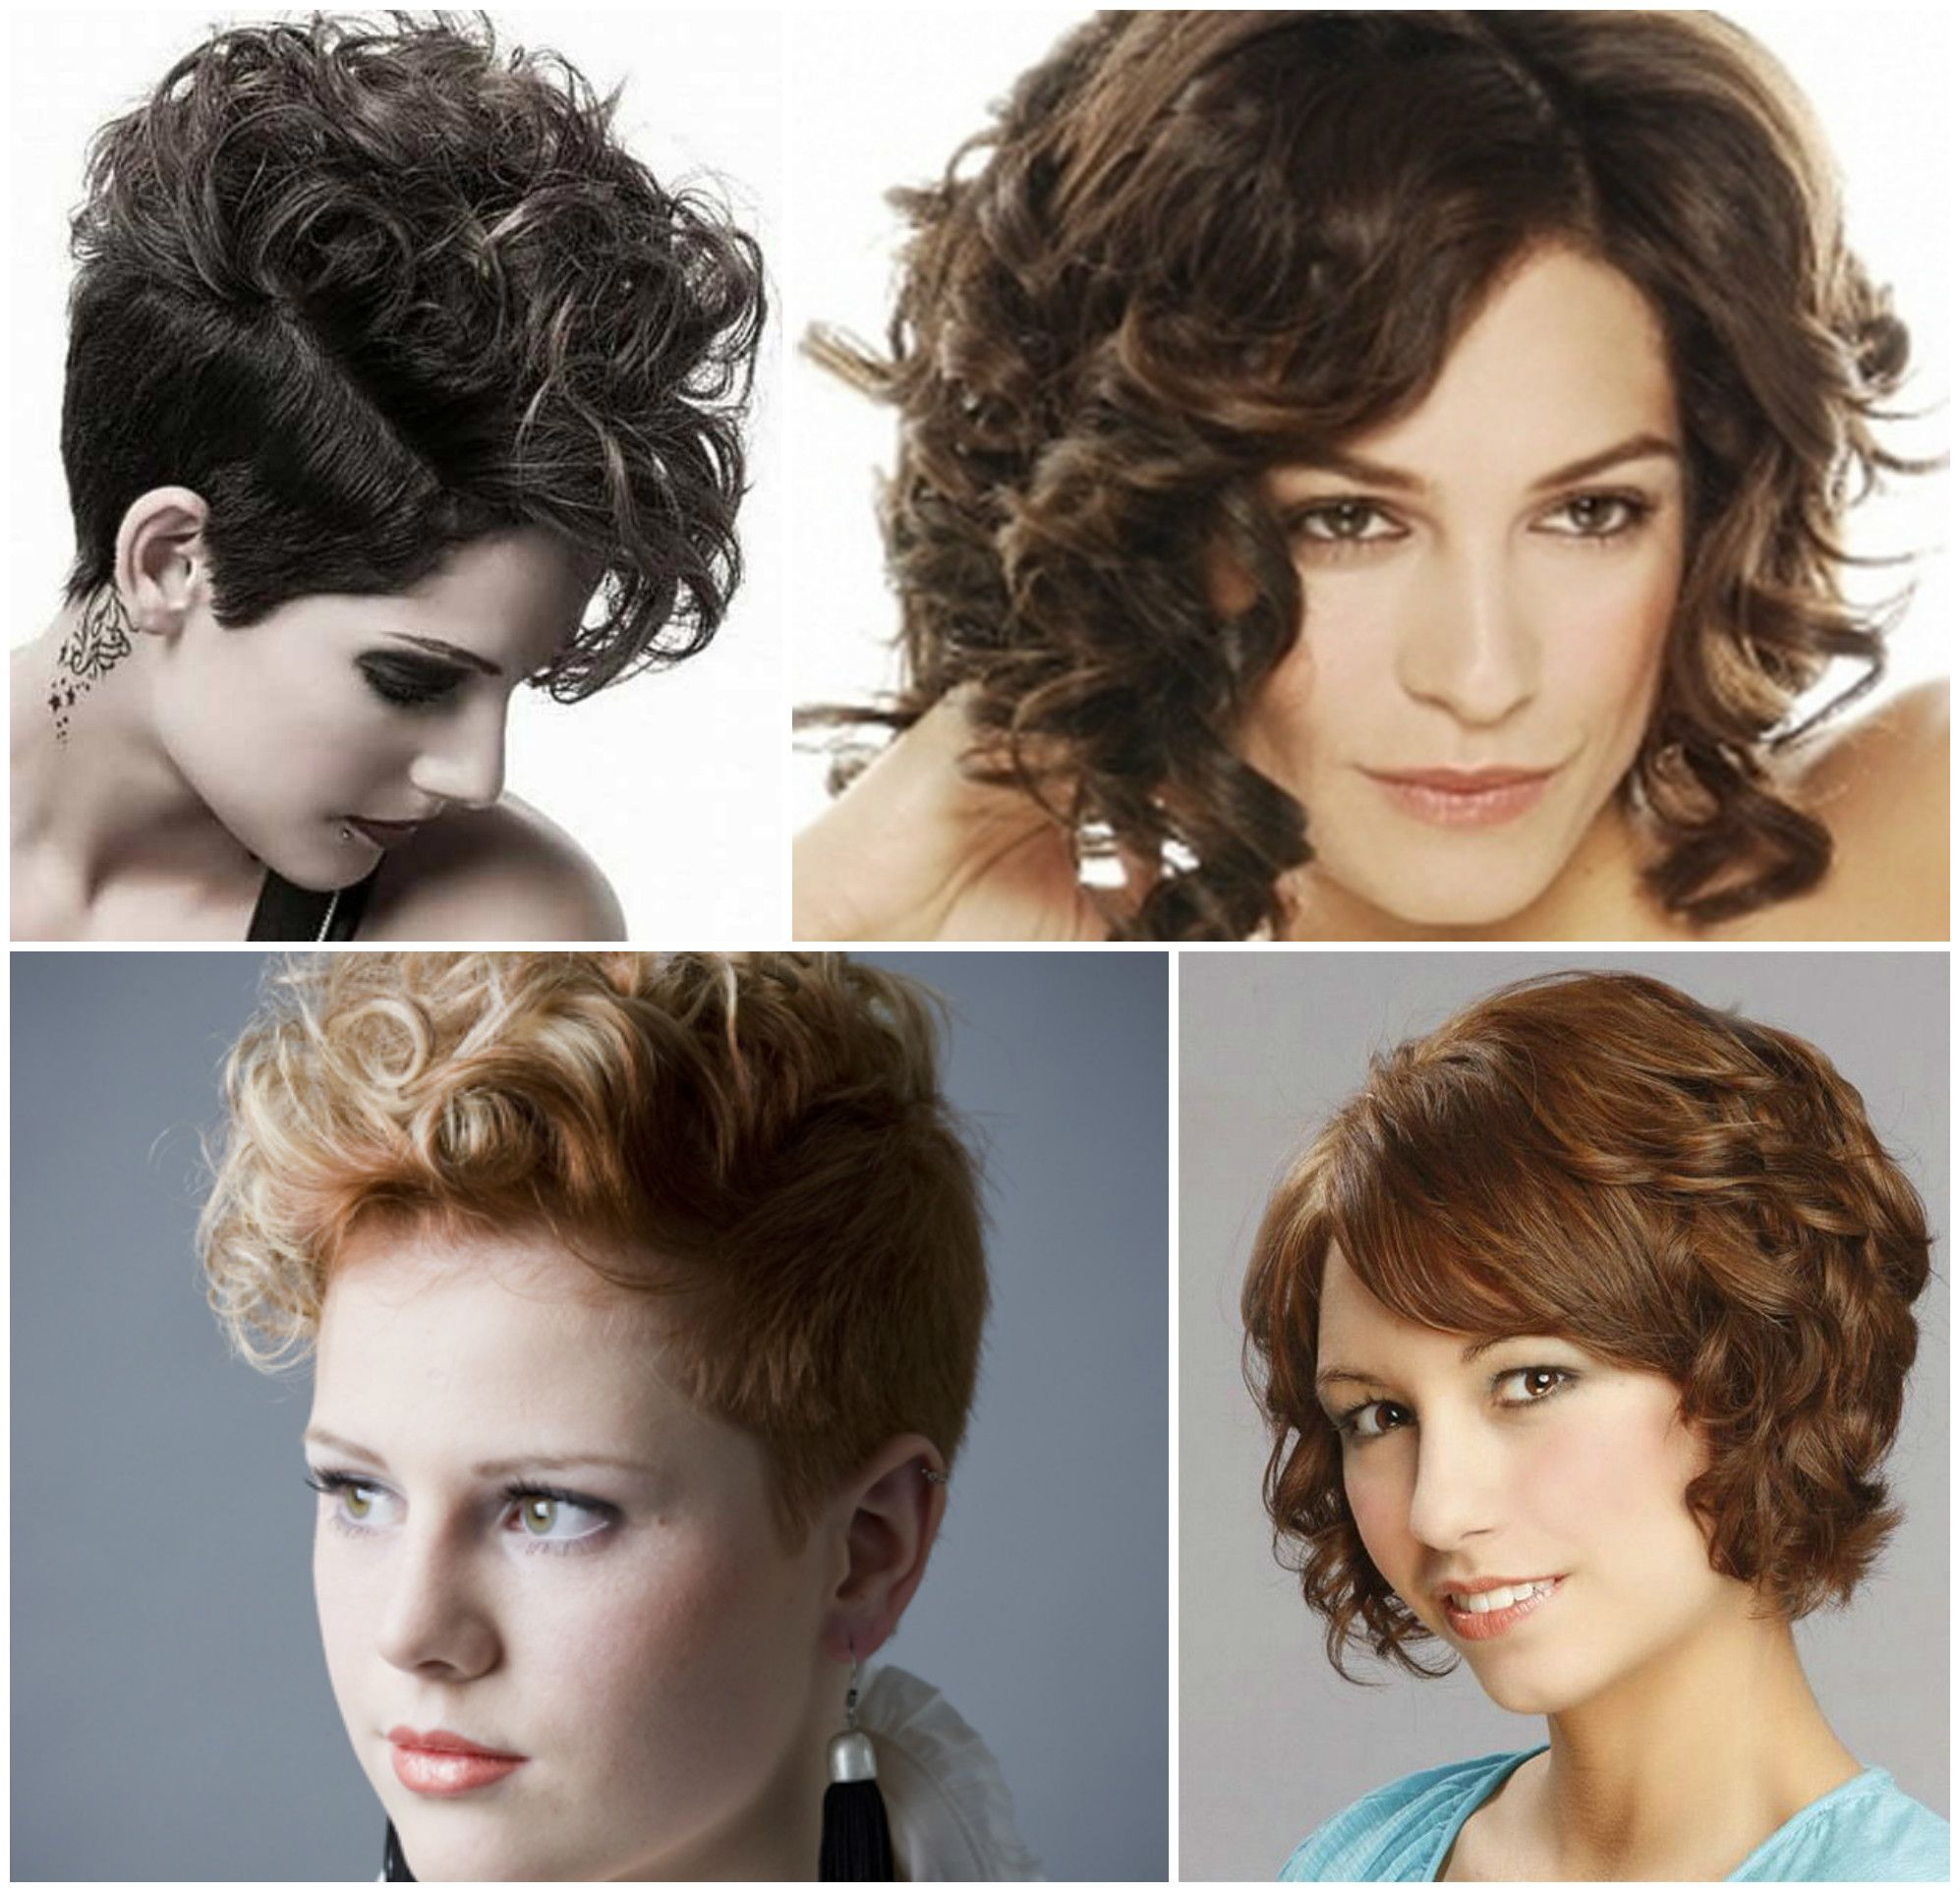 The Best Short And Curly Hairstyles 2017 Click For Other Hair Styles